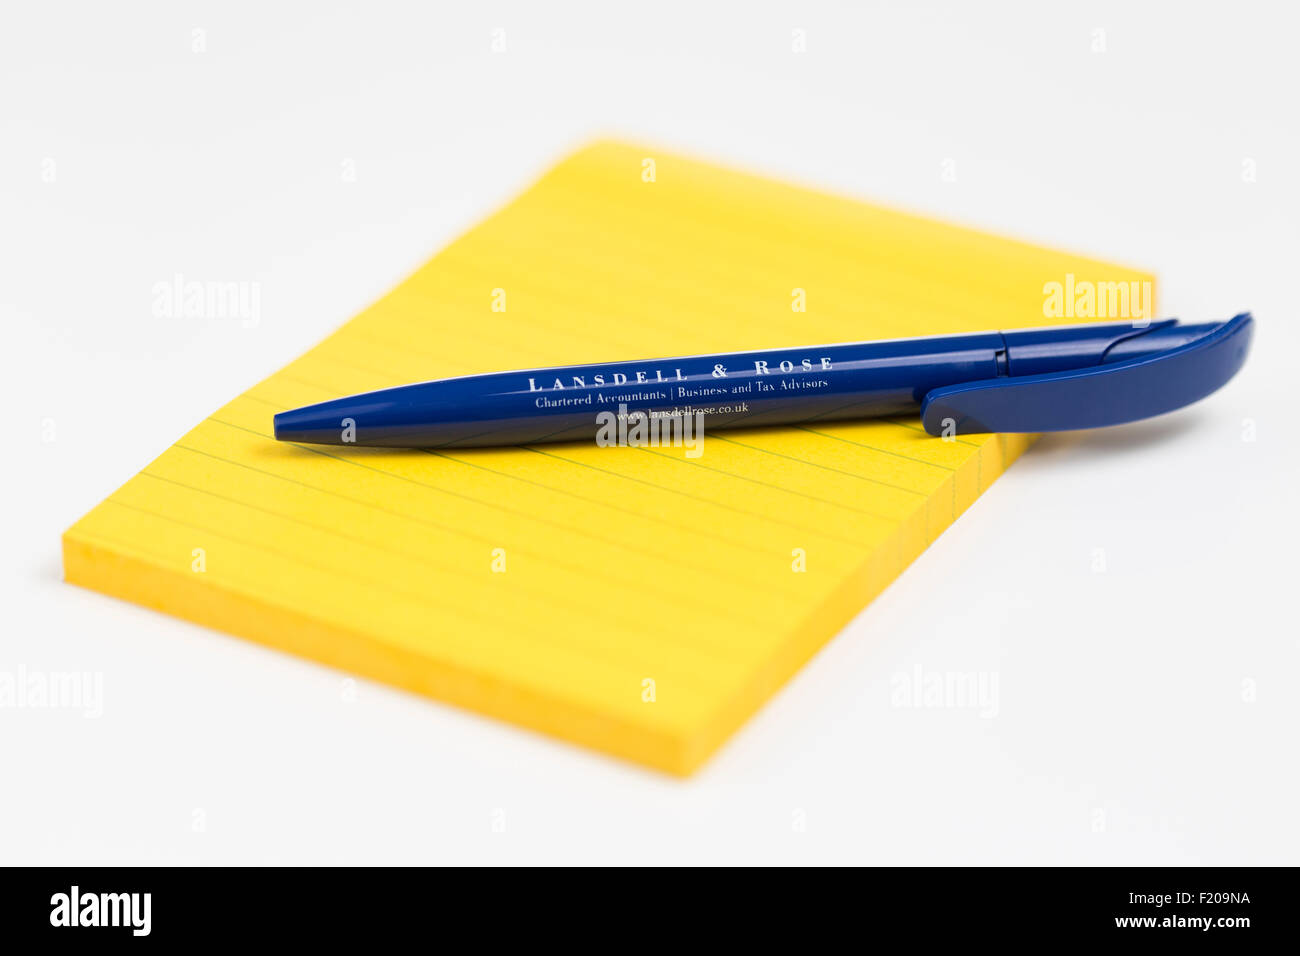 Pen and Notepad Stationery Office Products - Stock Image